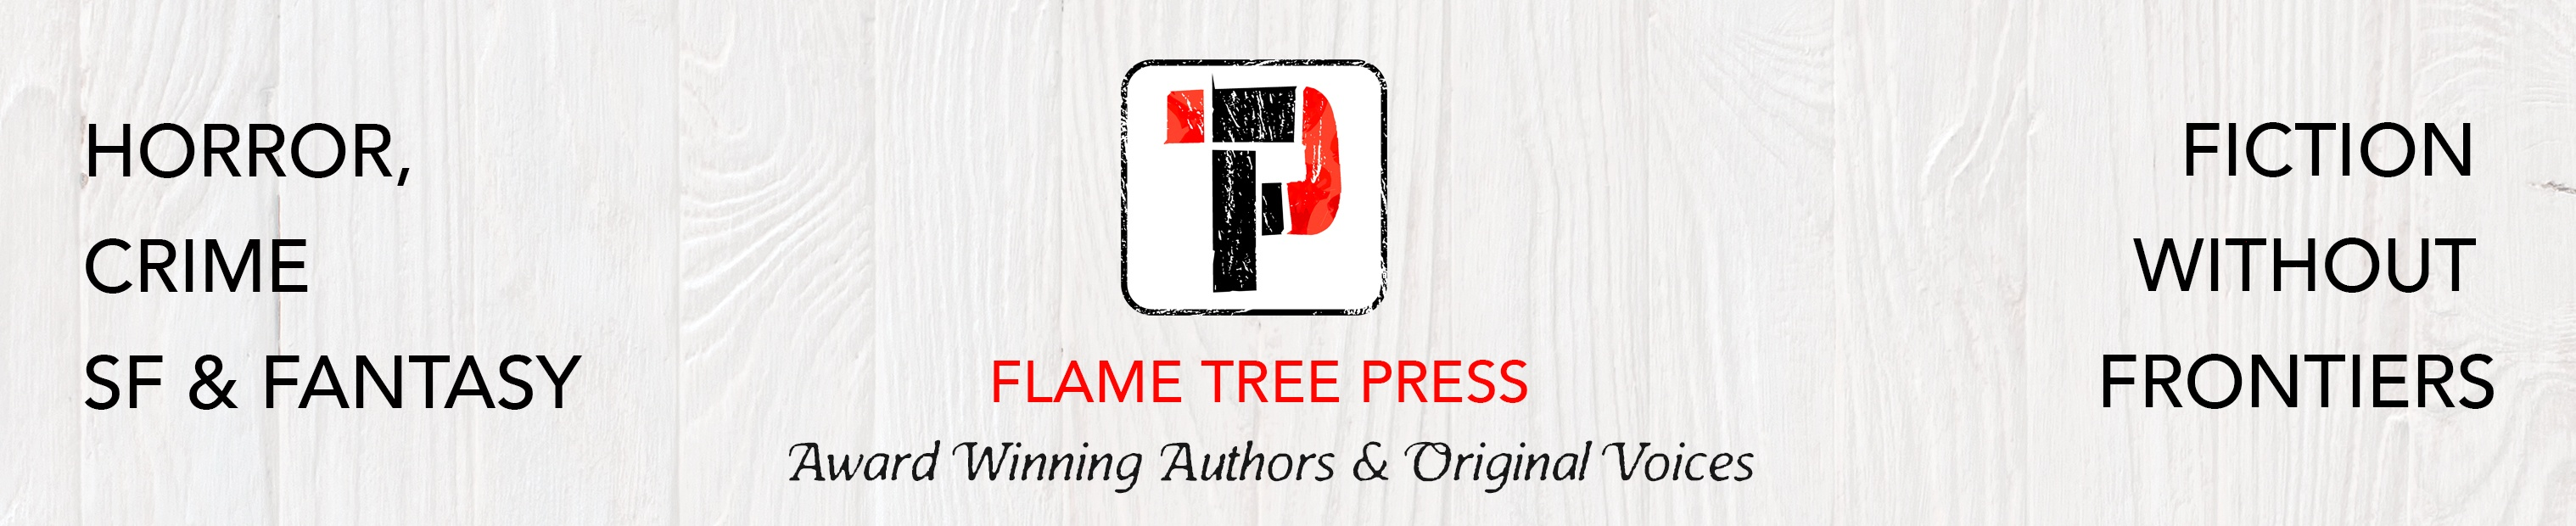 Hubspot header Flame Tree Press 02.jpg